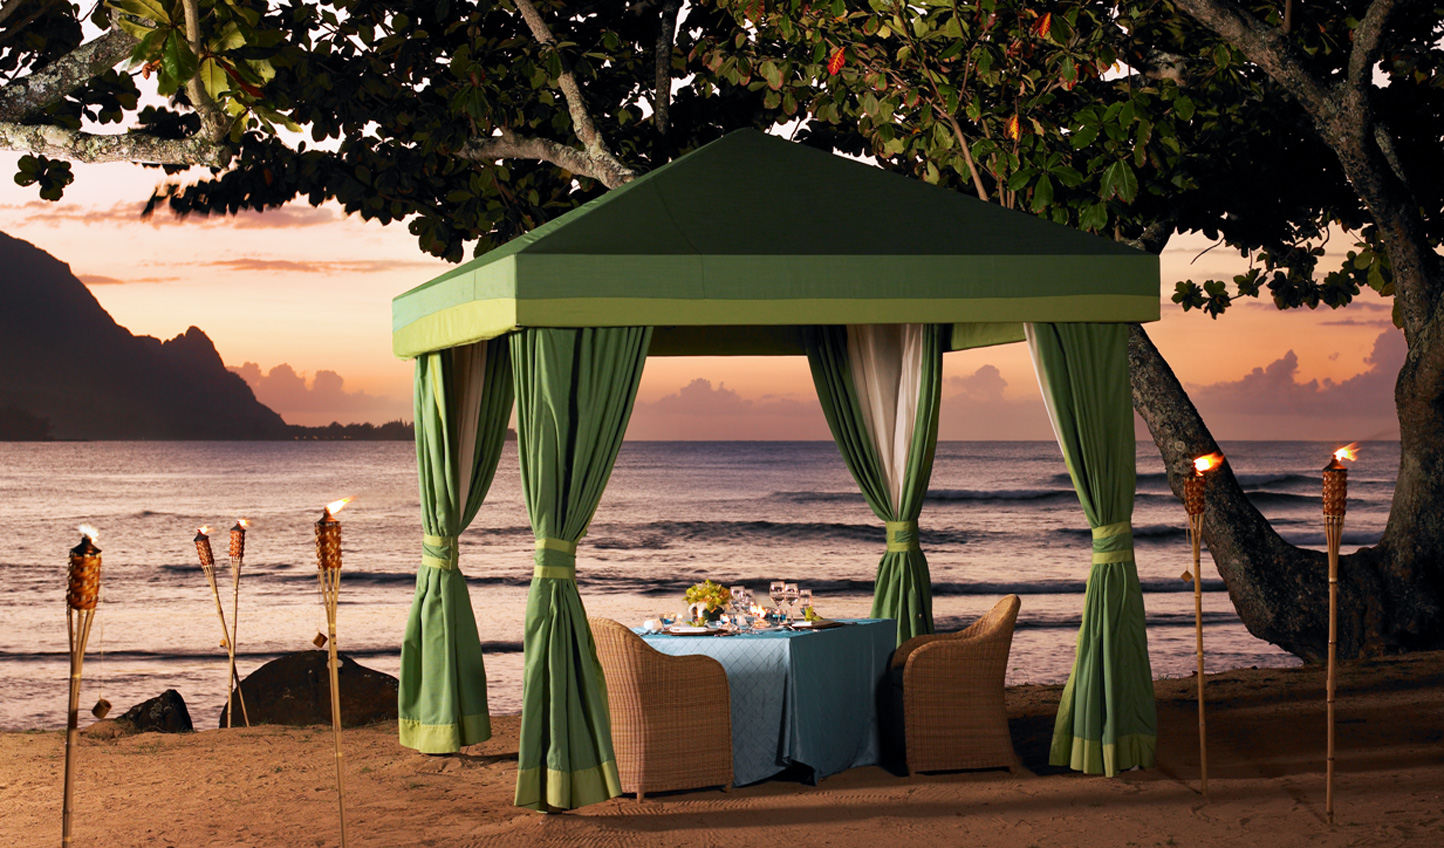 The perfect spot for a romantic dinner for two